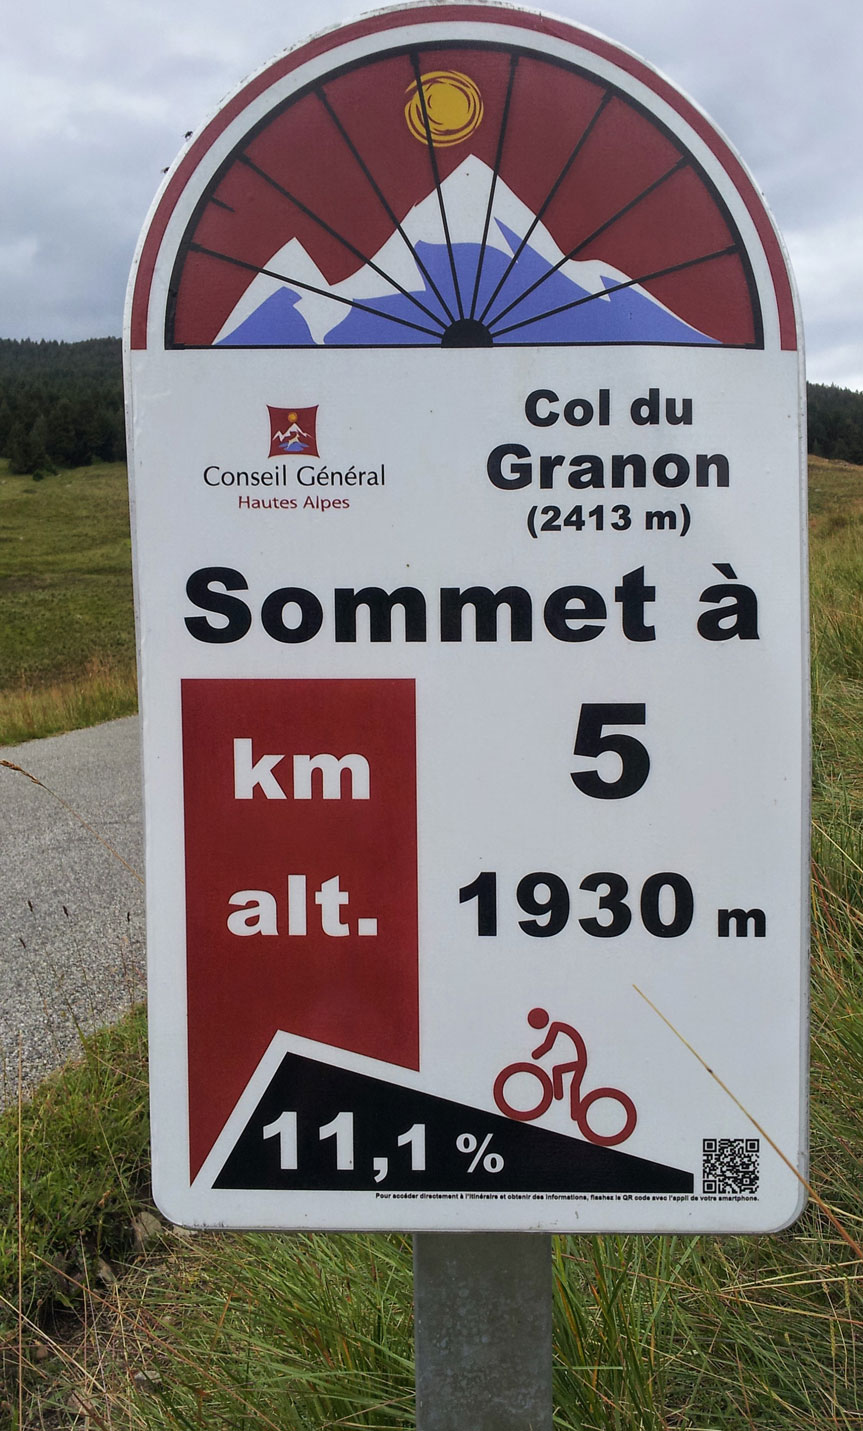 Col de Granon Gradient and the 5km profile sign